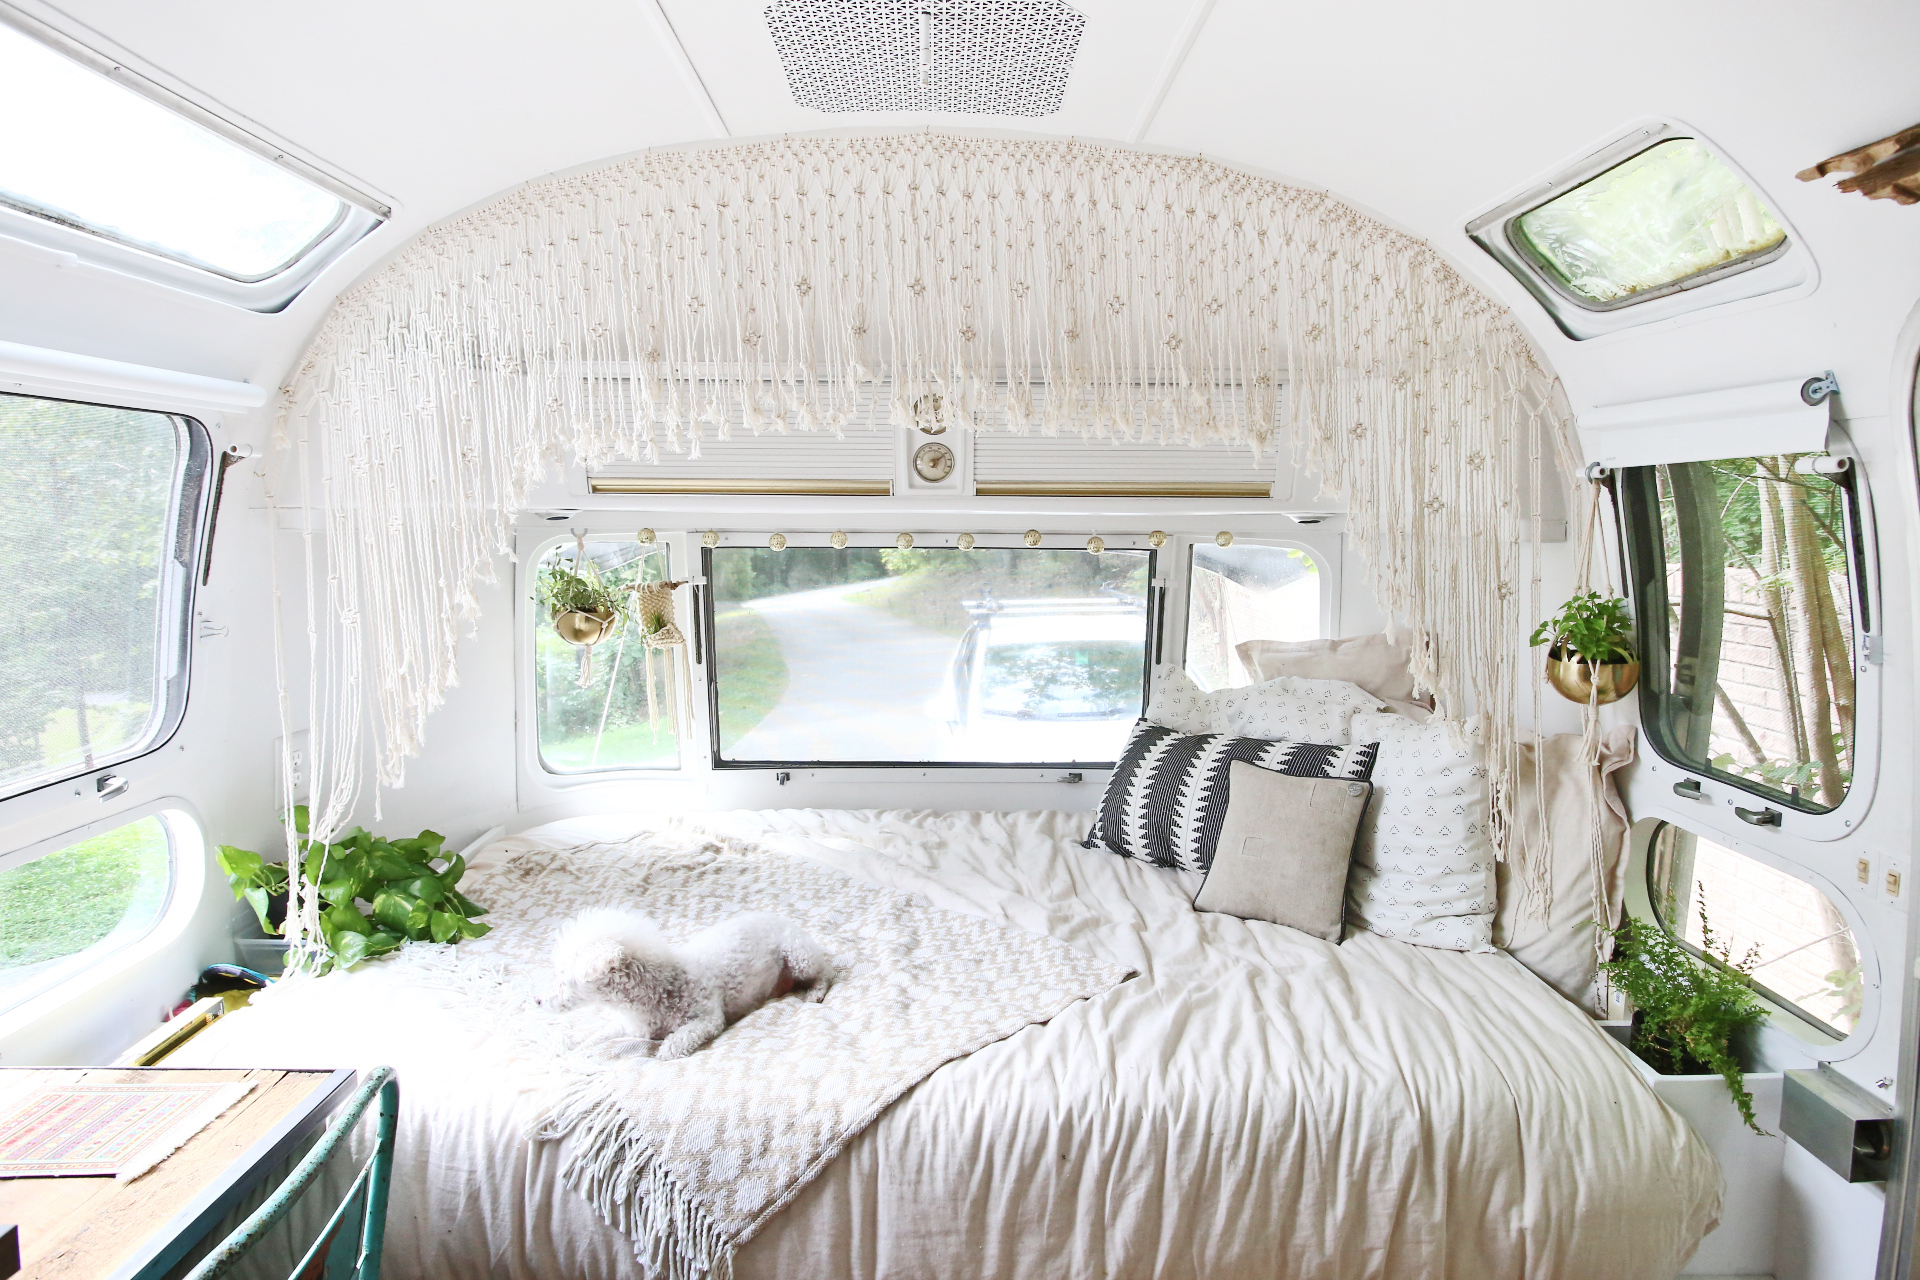 Airstream Bed Remodel Part 2: Twin Beds to Full-sized Bed ...